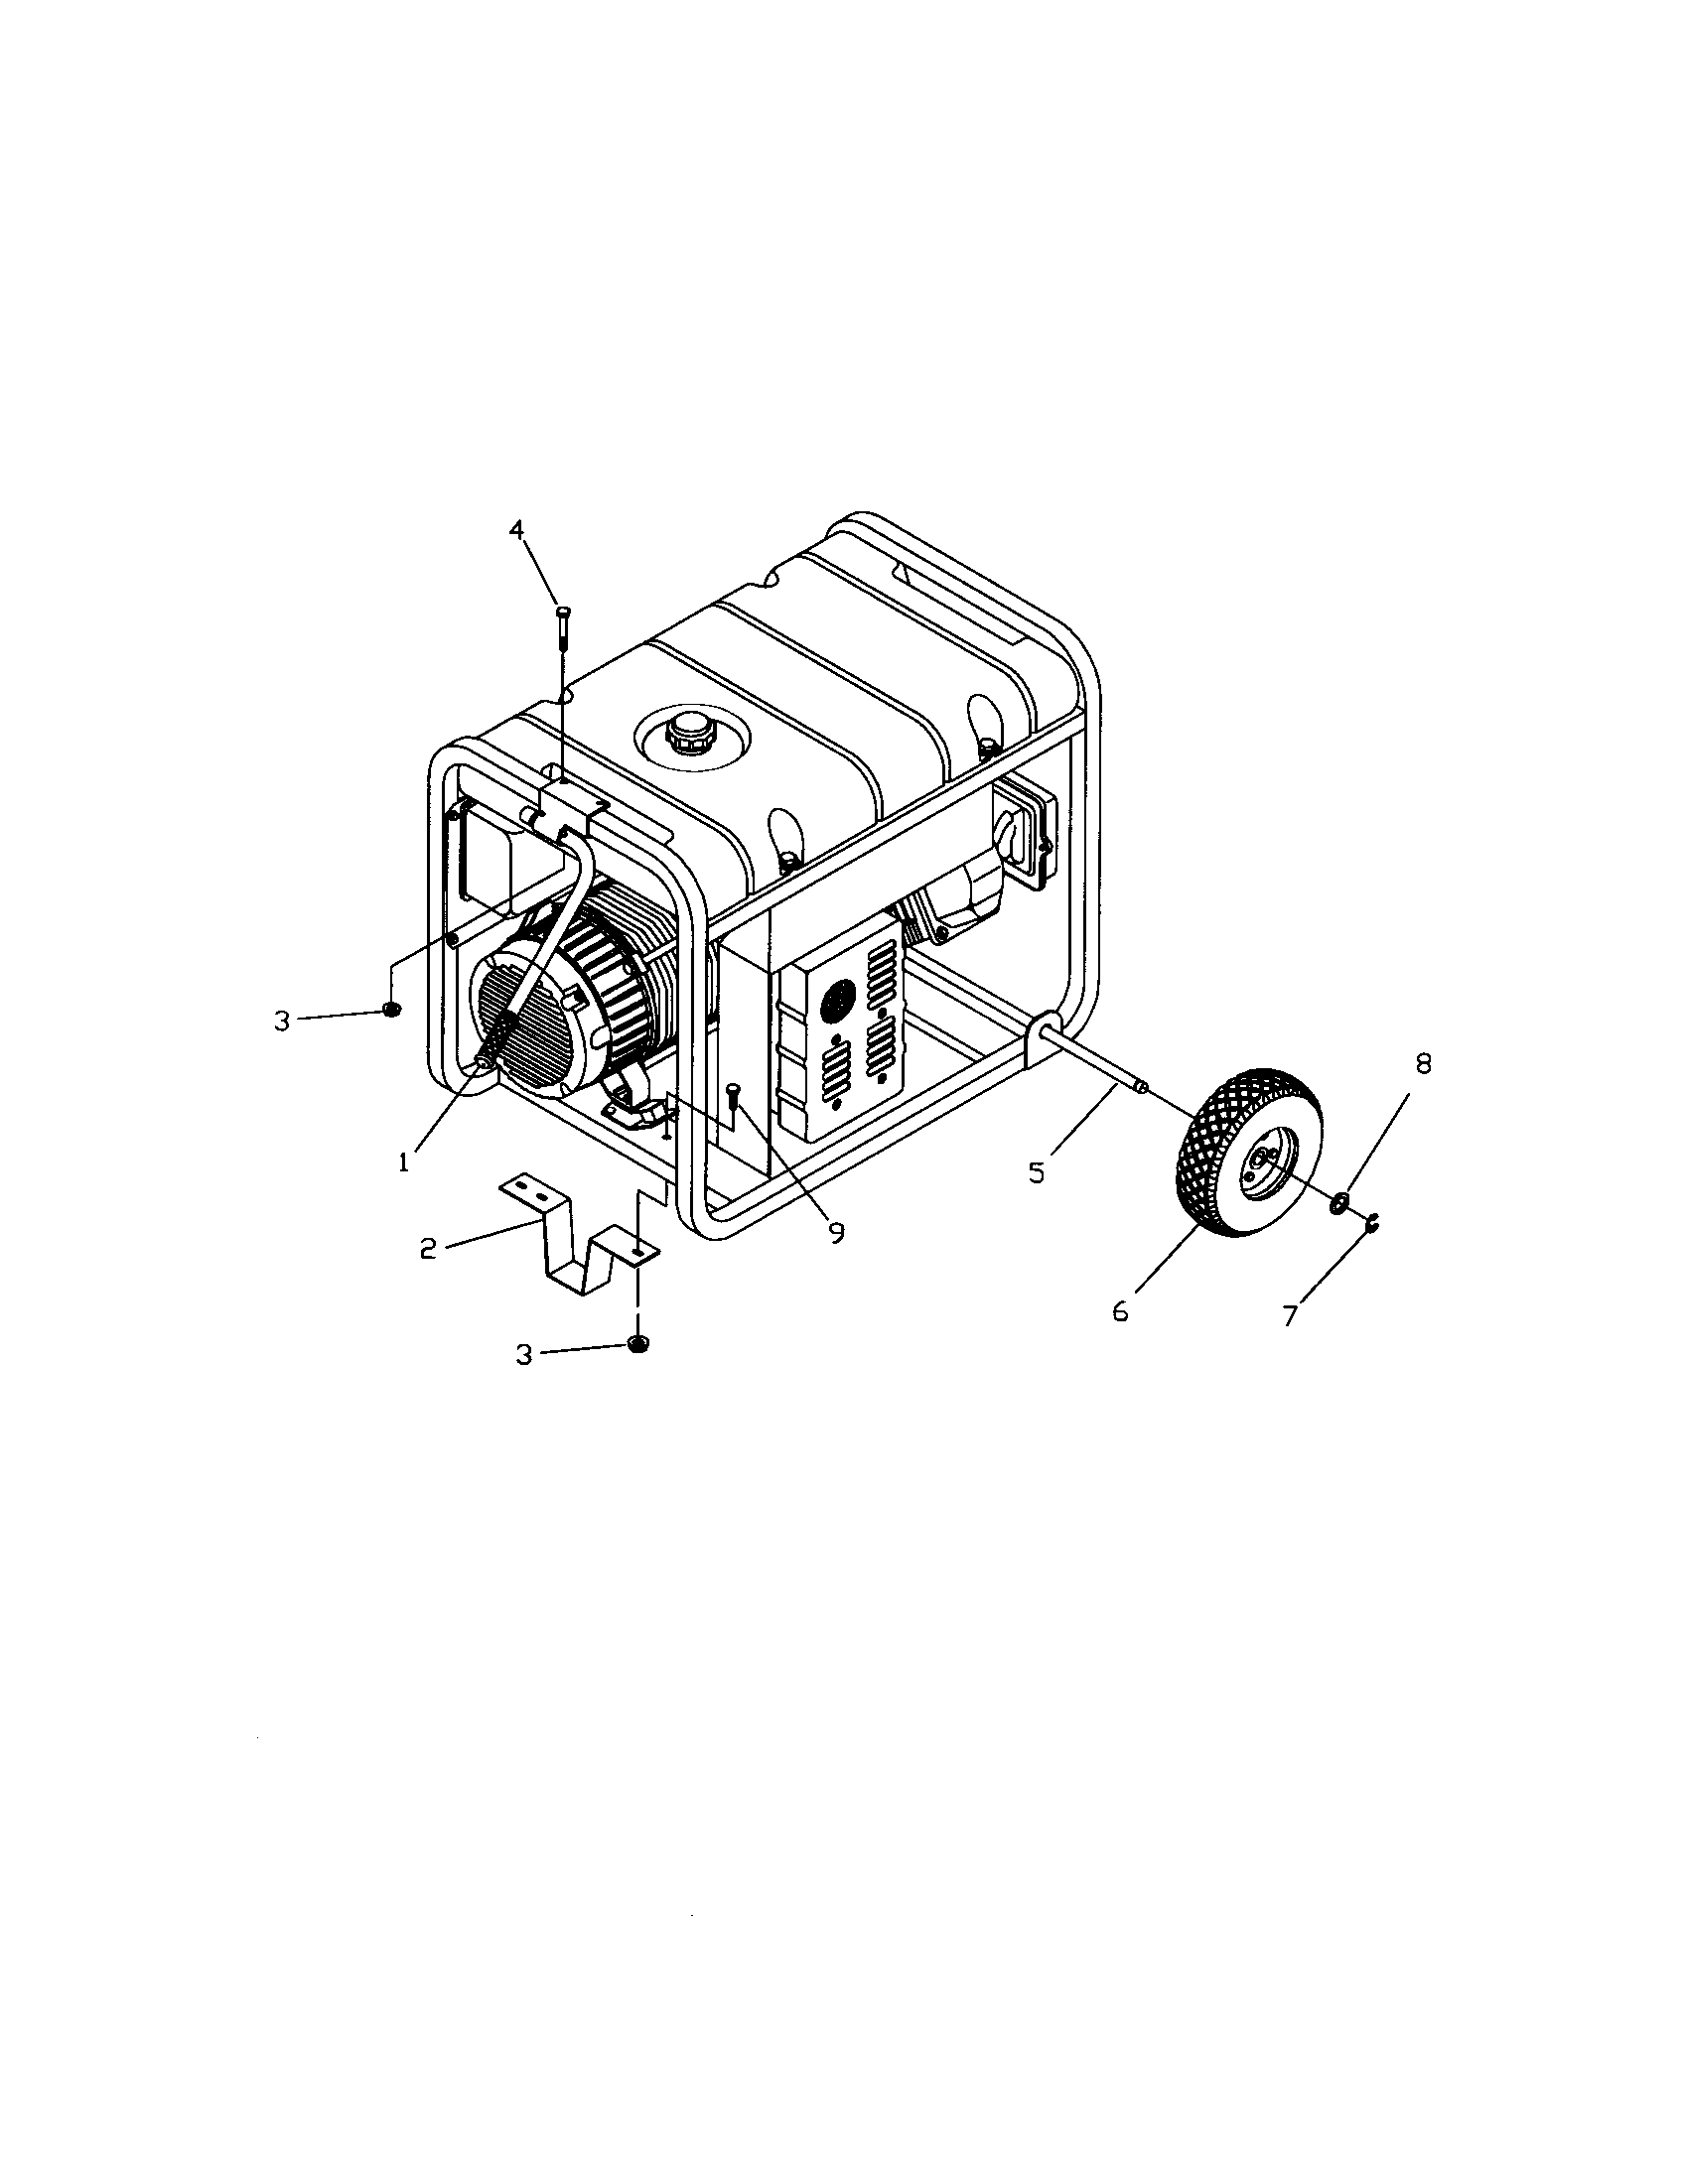 Troybilt model 01919 generator genuine parts